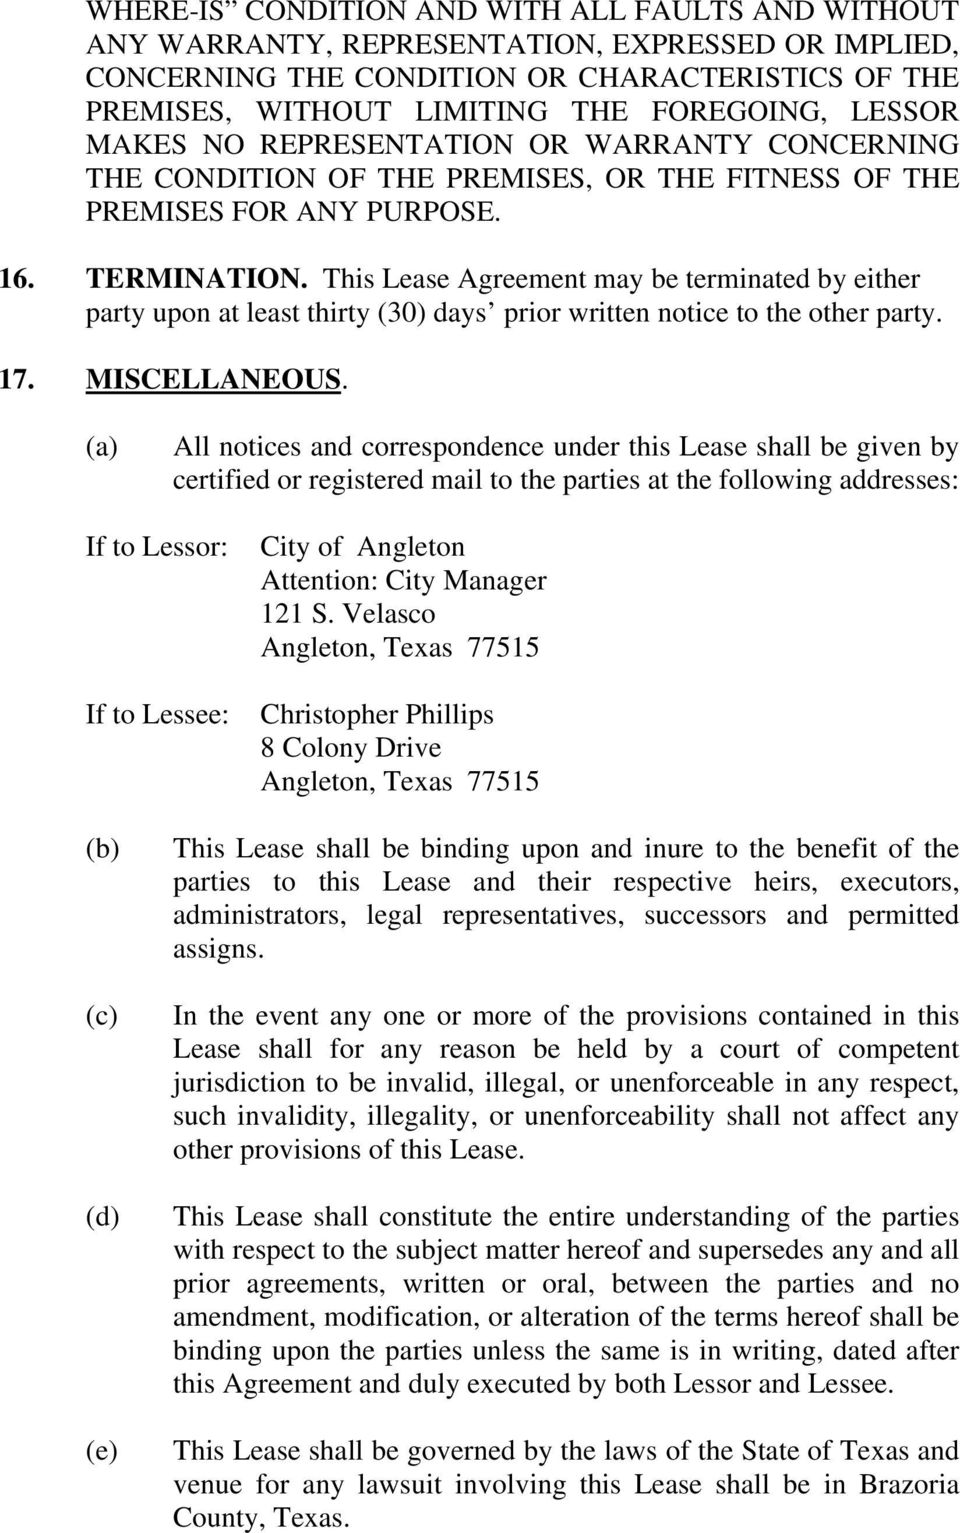 This Lease Agreement may be terminated by either party upon at least thirty (30) days prior written notice to the other party. 17. MISCELLANEOUS.